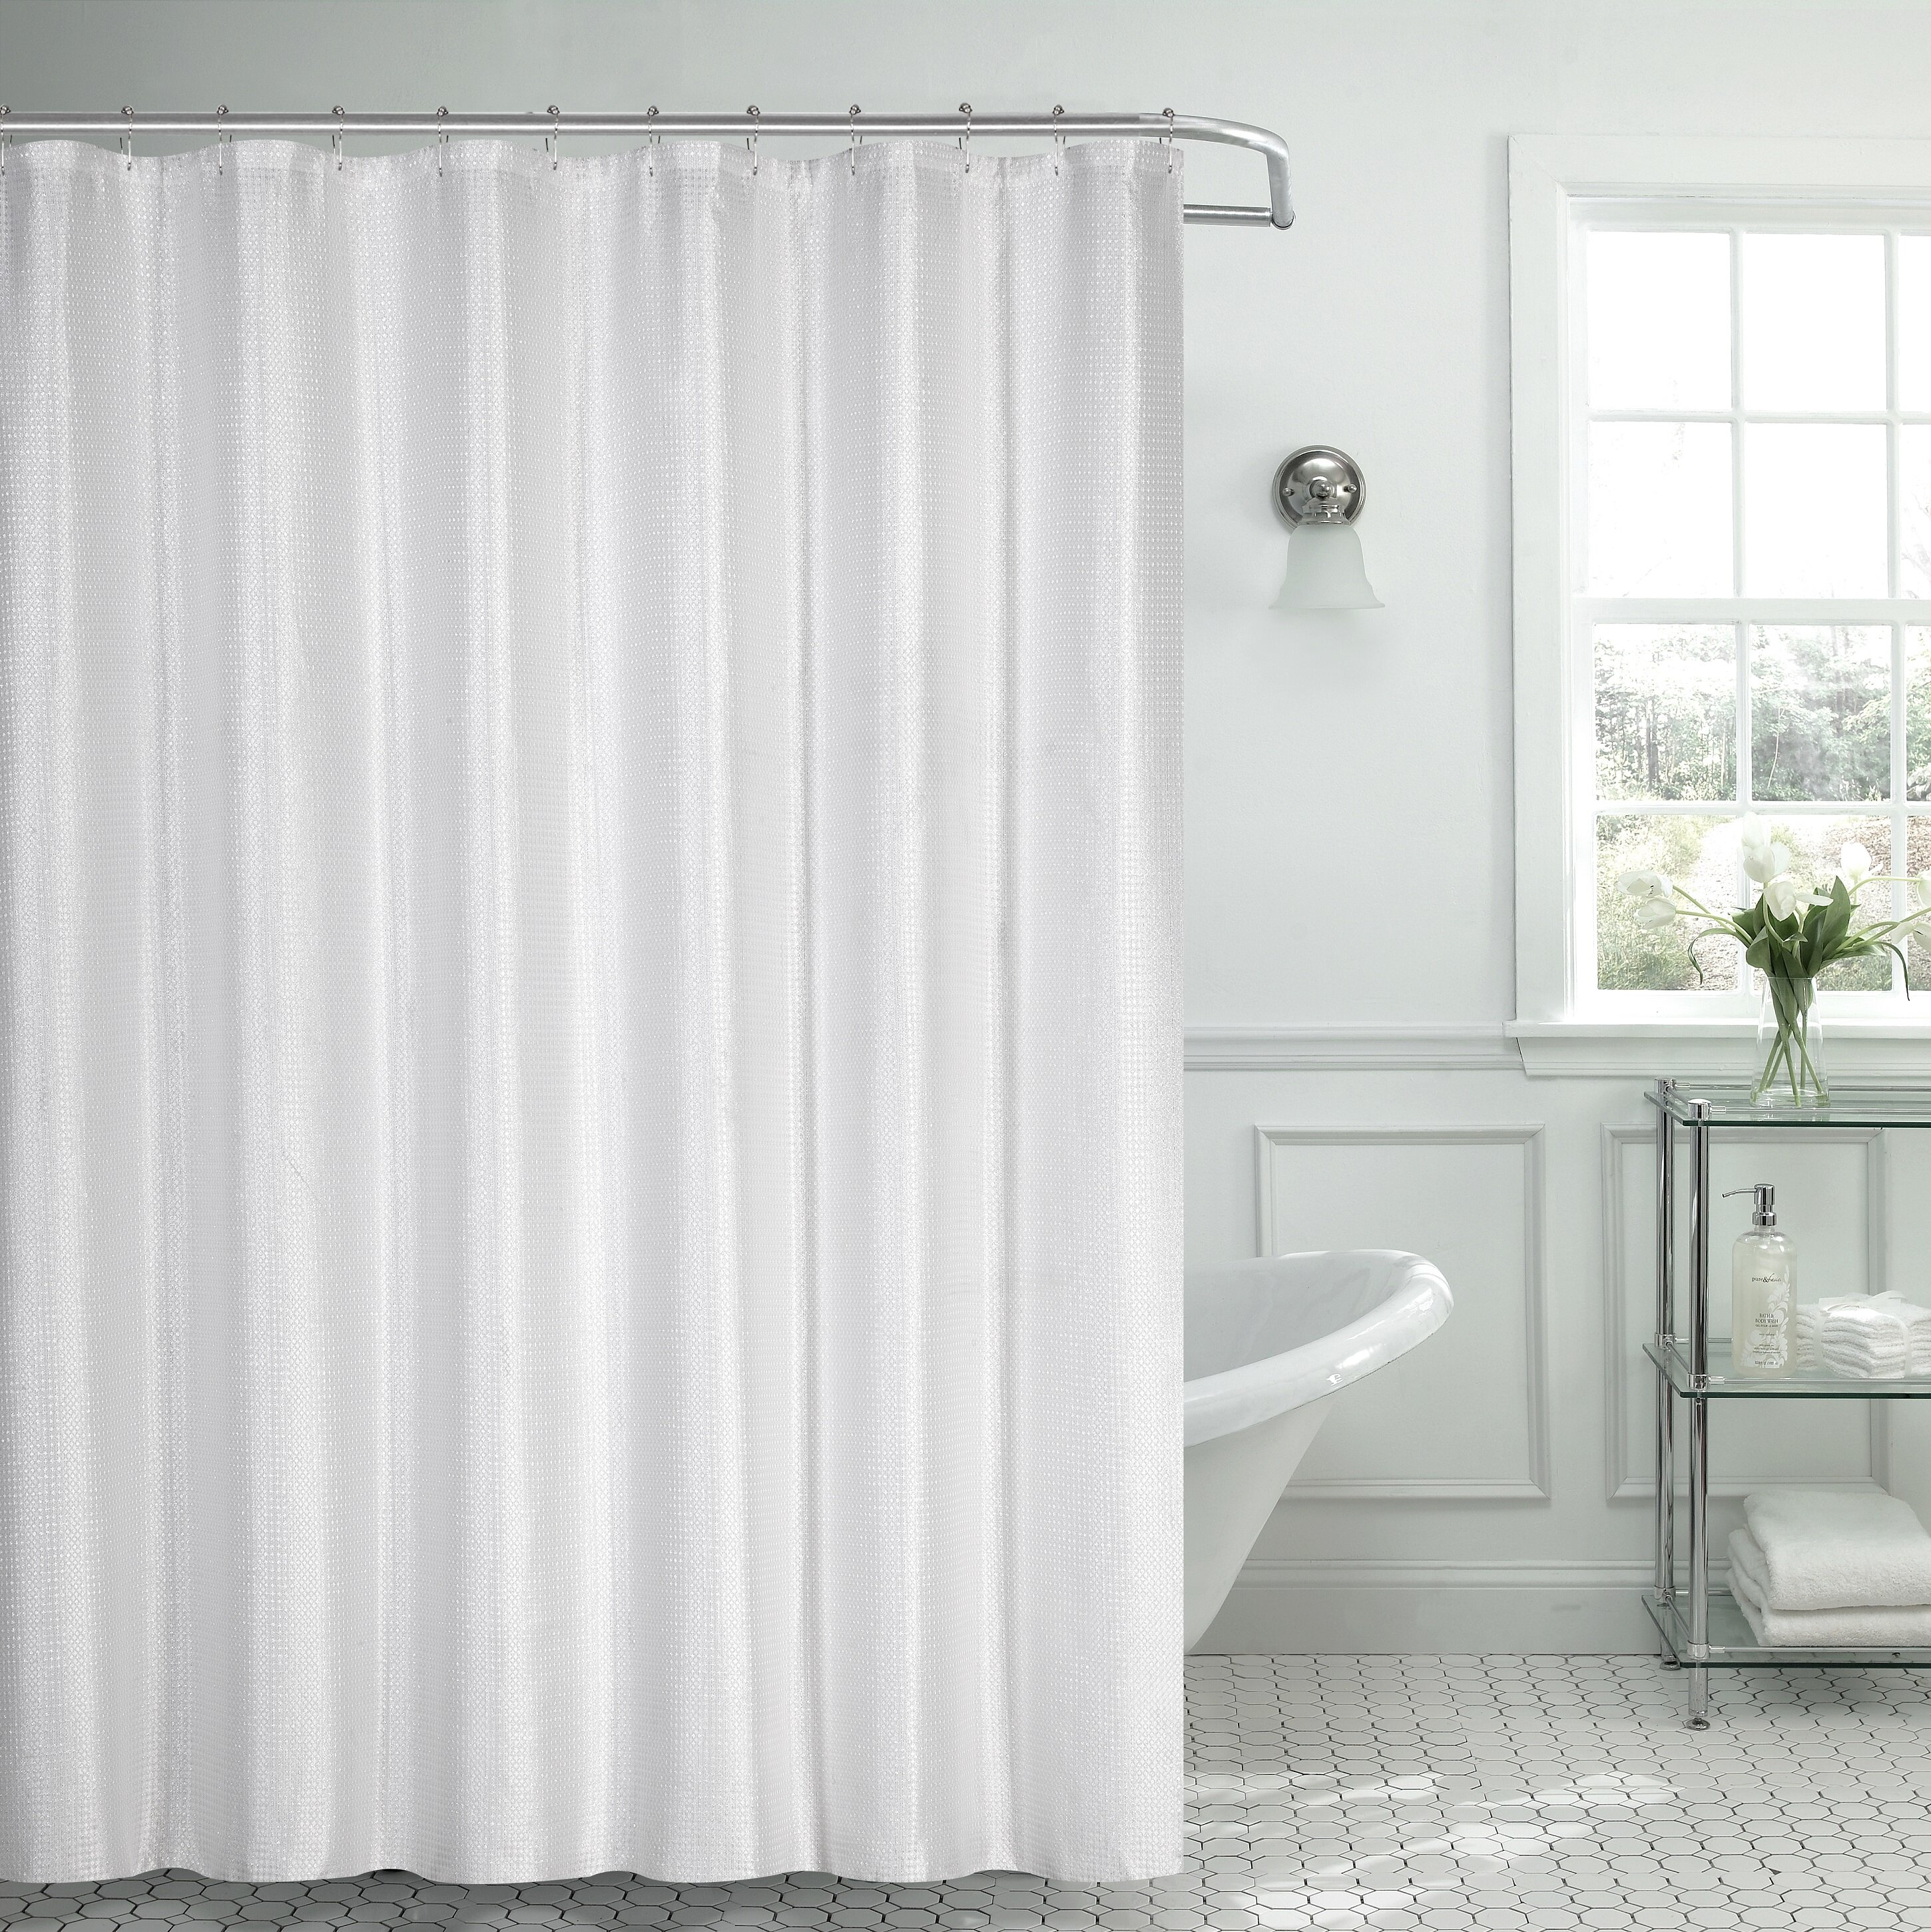 curtain diy at prd q cooke bq departments lewis white b waffle mm curtains cecina shower l